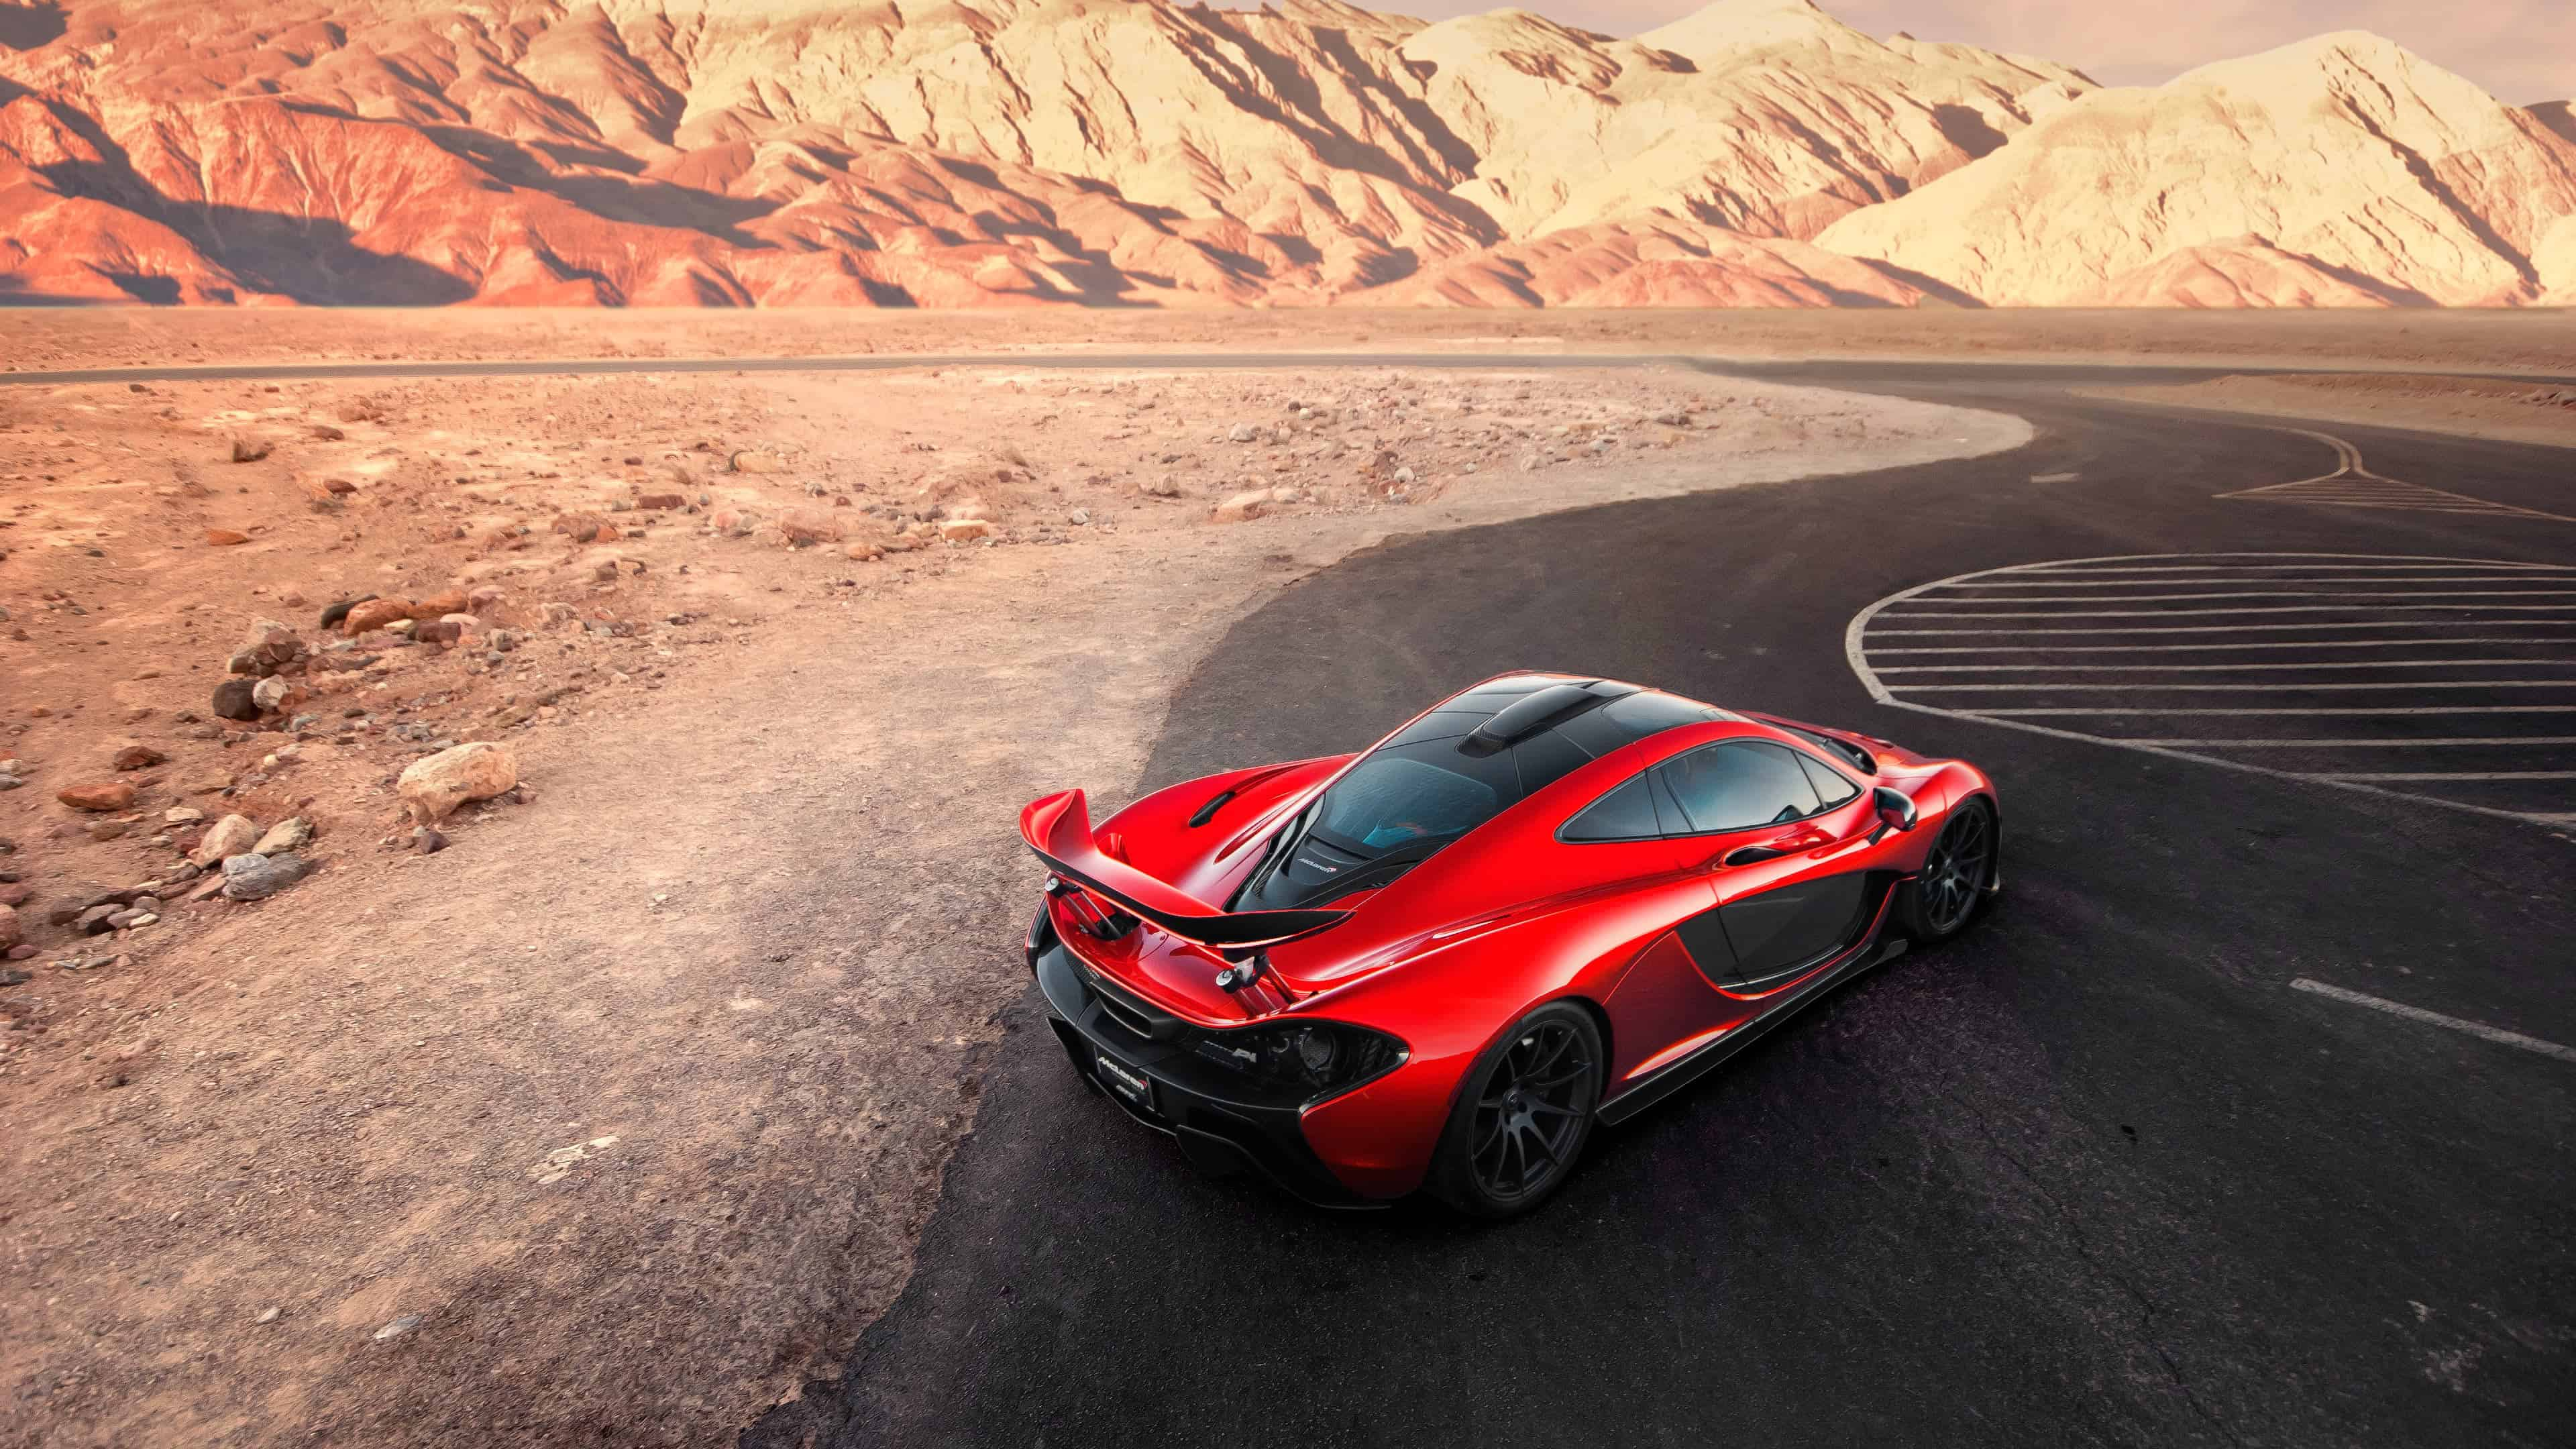 Mclaren P1 Red Uhd 4k Wallpaper Pixelz